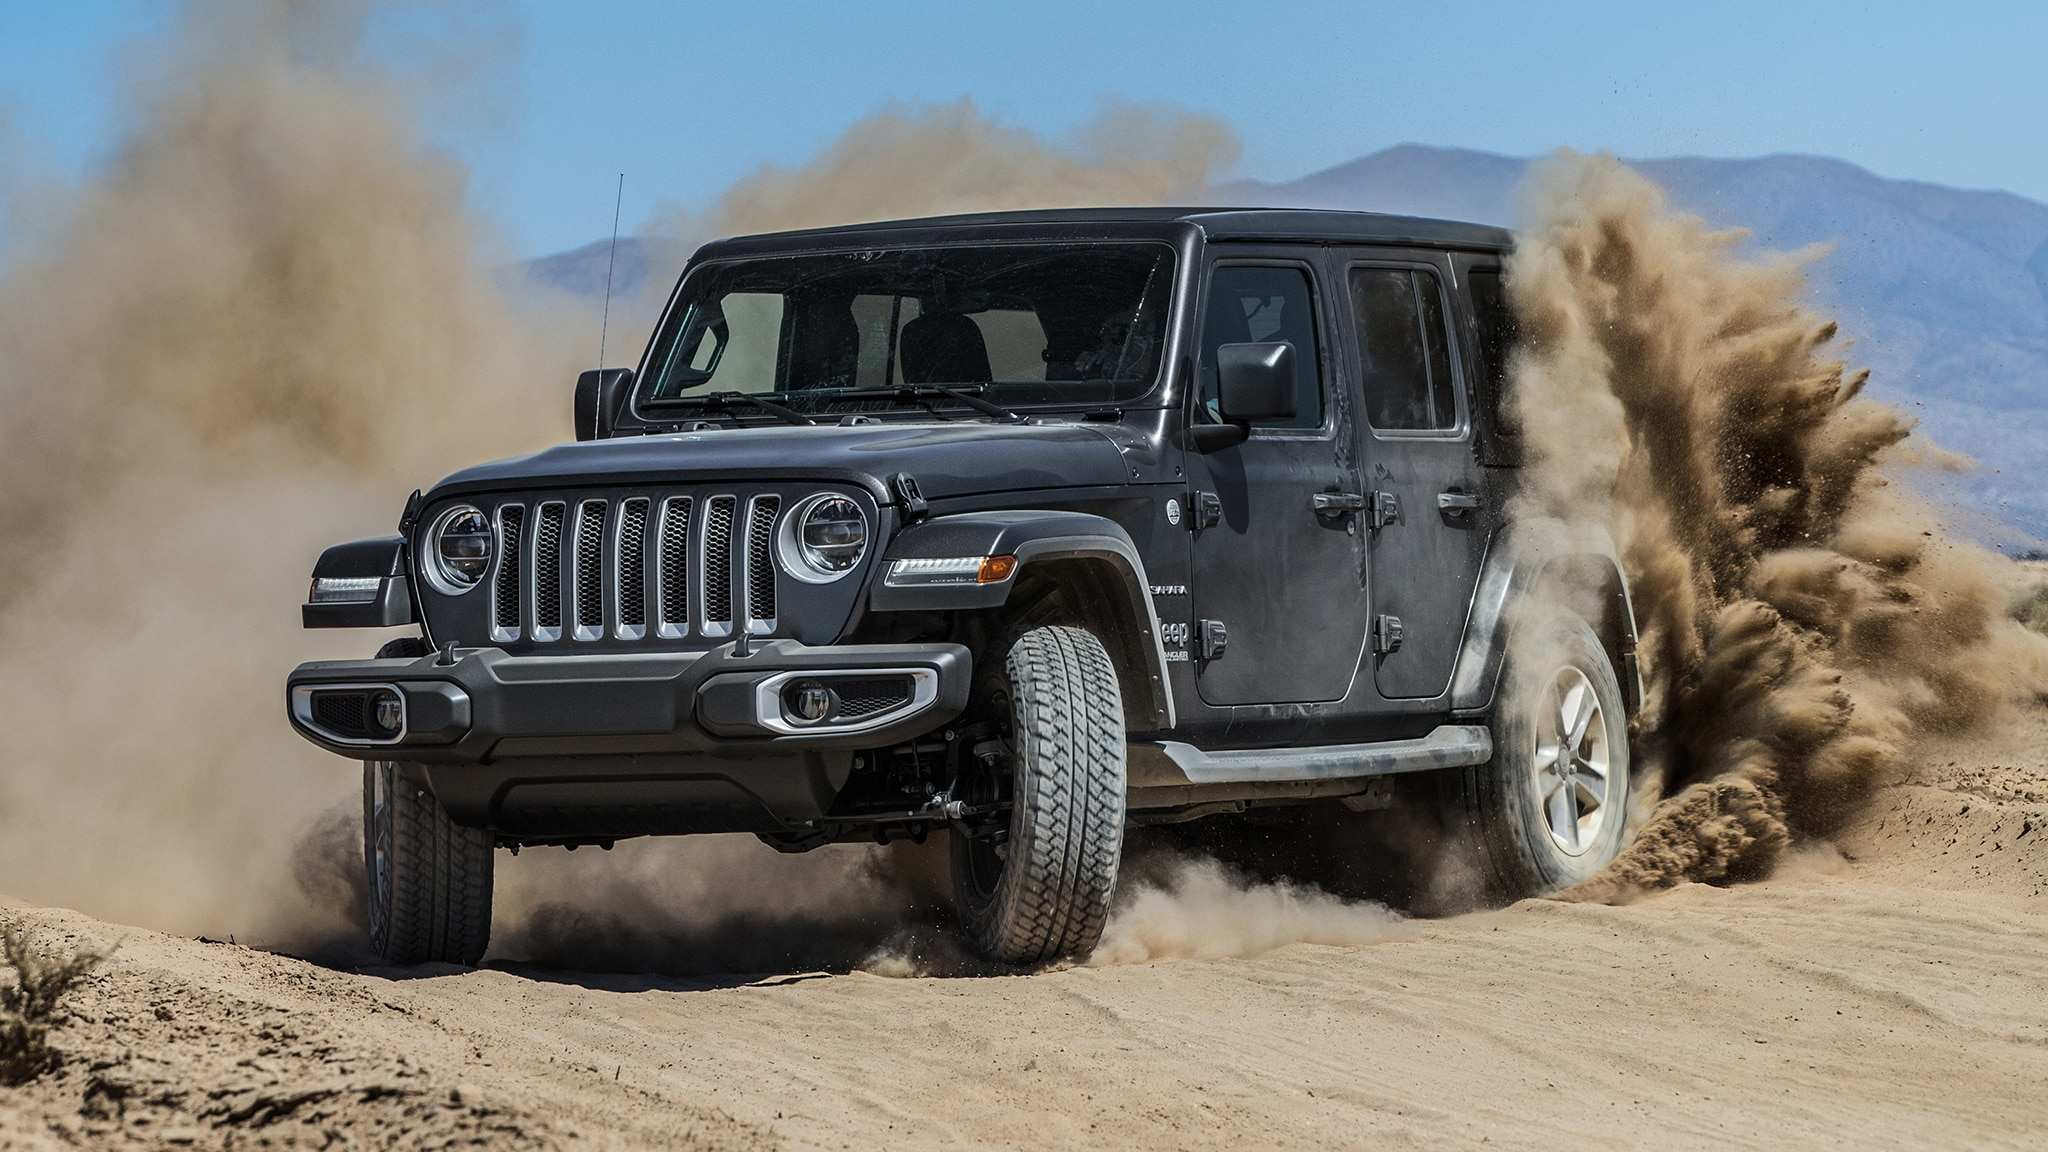 73 New 2020 Jeep Wrangler Updates Exterior and Interior by 2020 Jeep Wrangler Updates